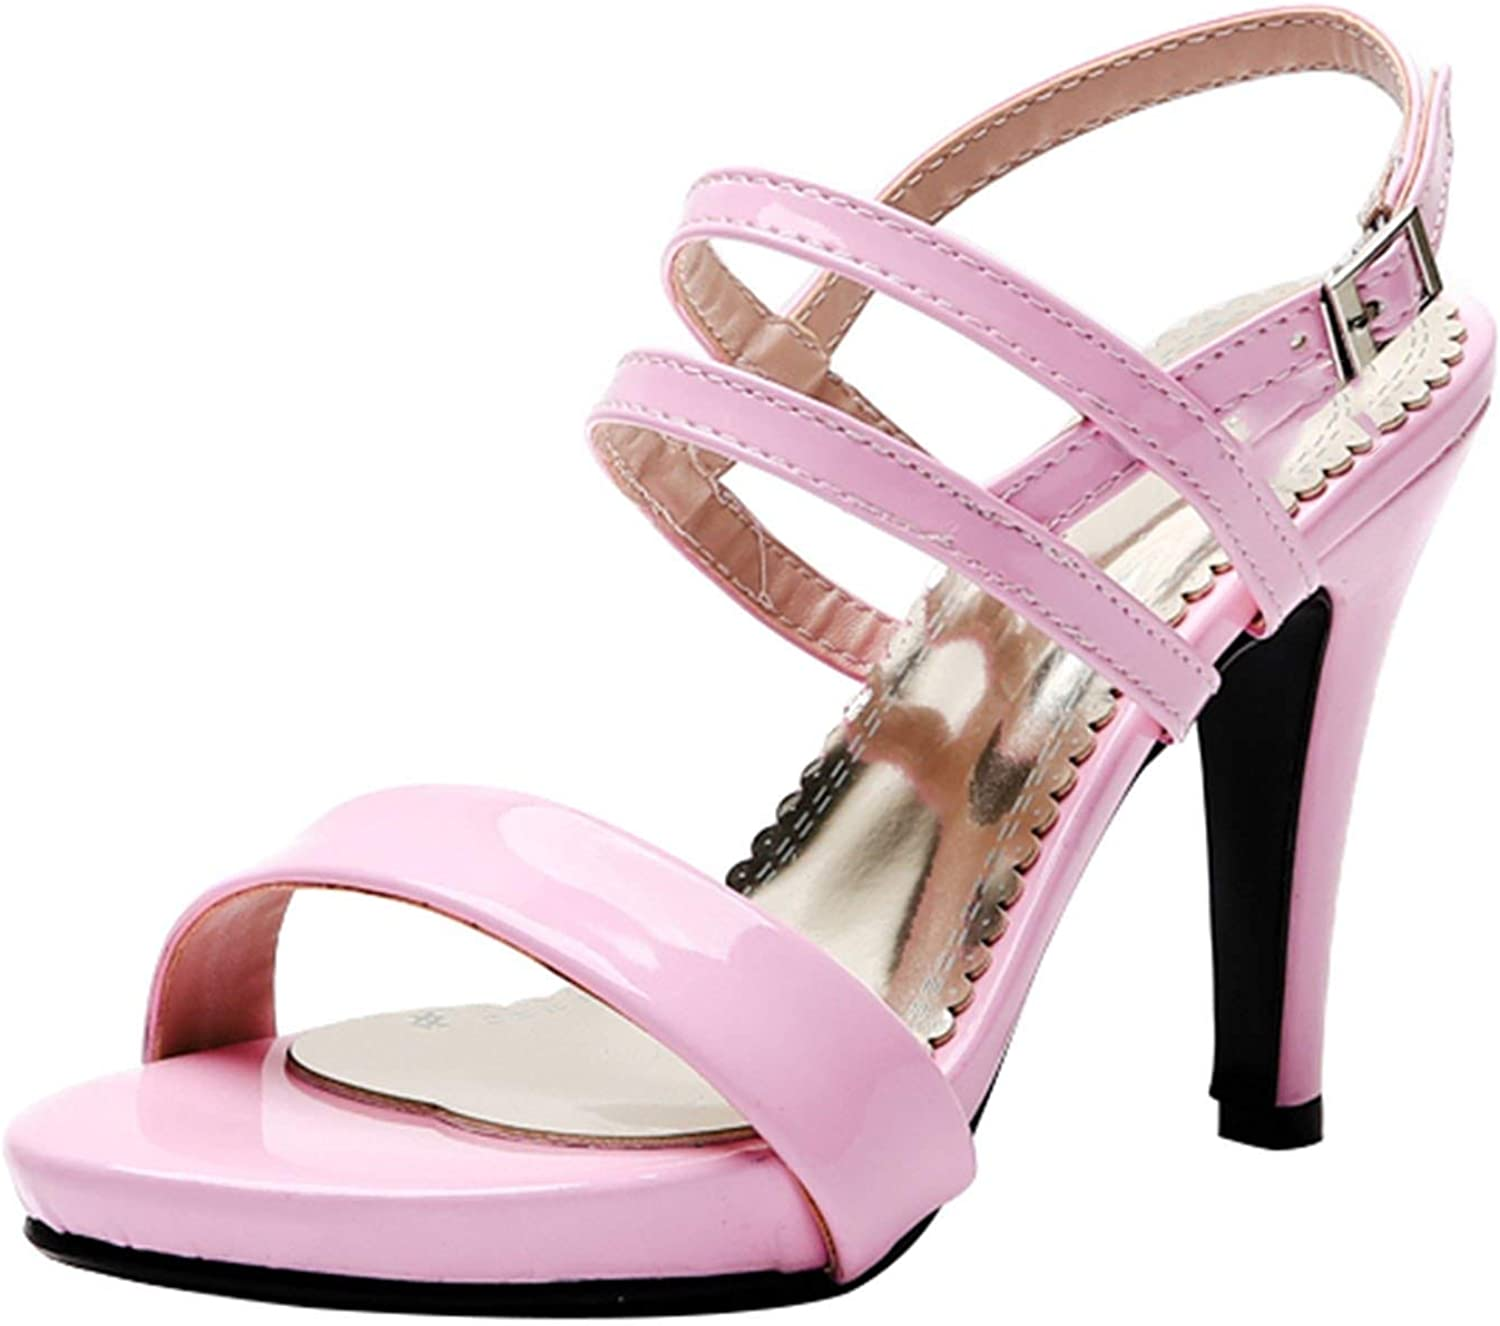 Size 43 Buckle Strap Spike High Heels Summer Sandals Sandals Female shoes Woman